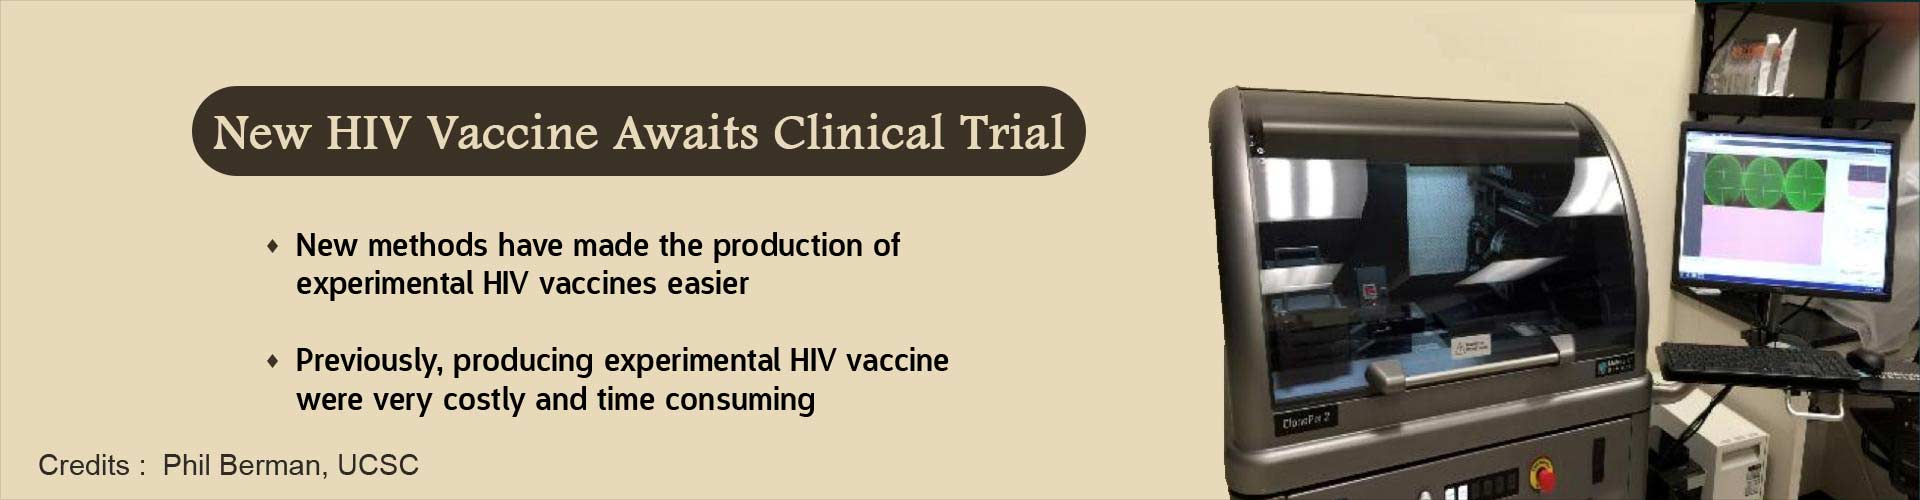 New HIV Vaccine Awaits Clinical Trial